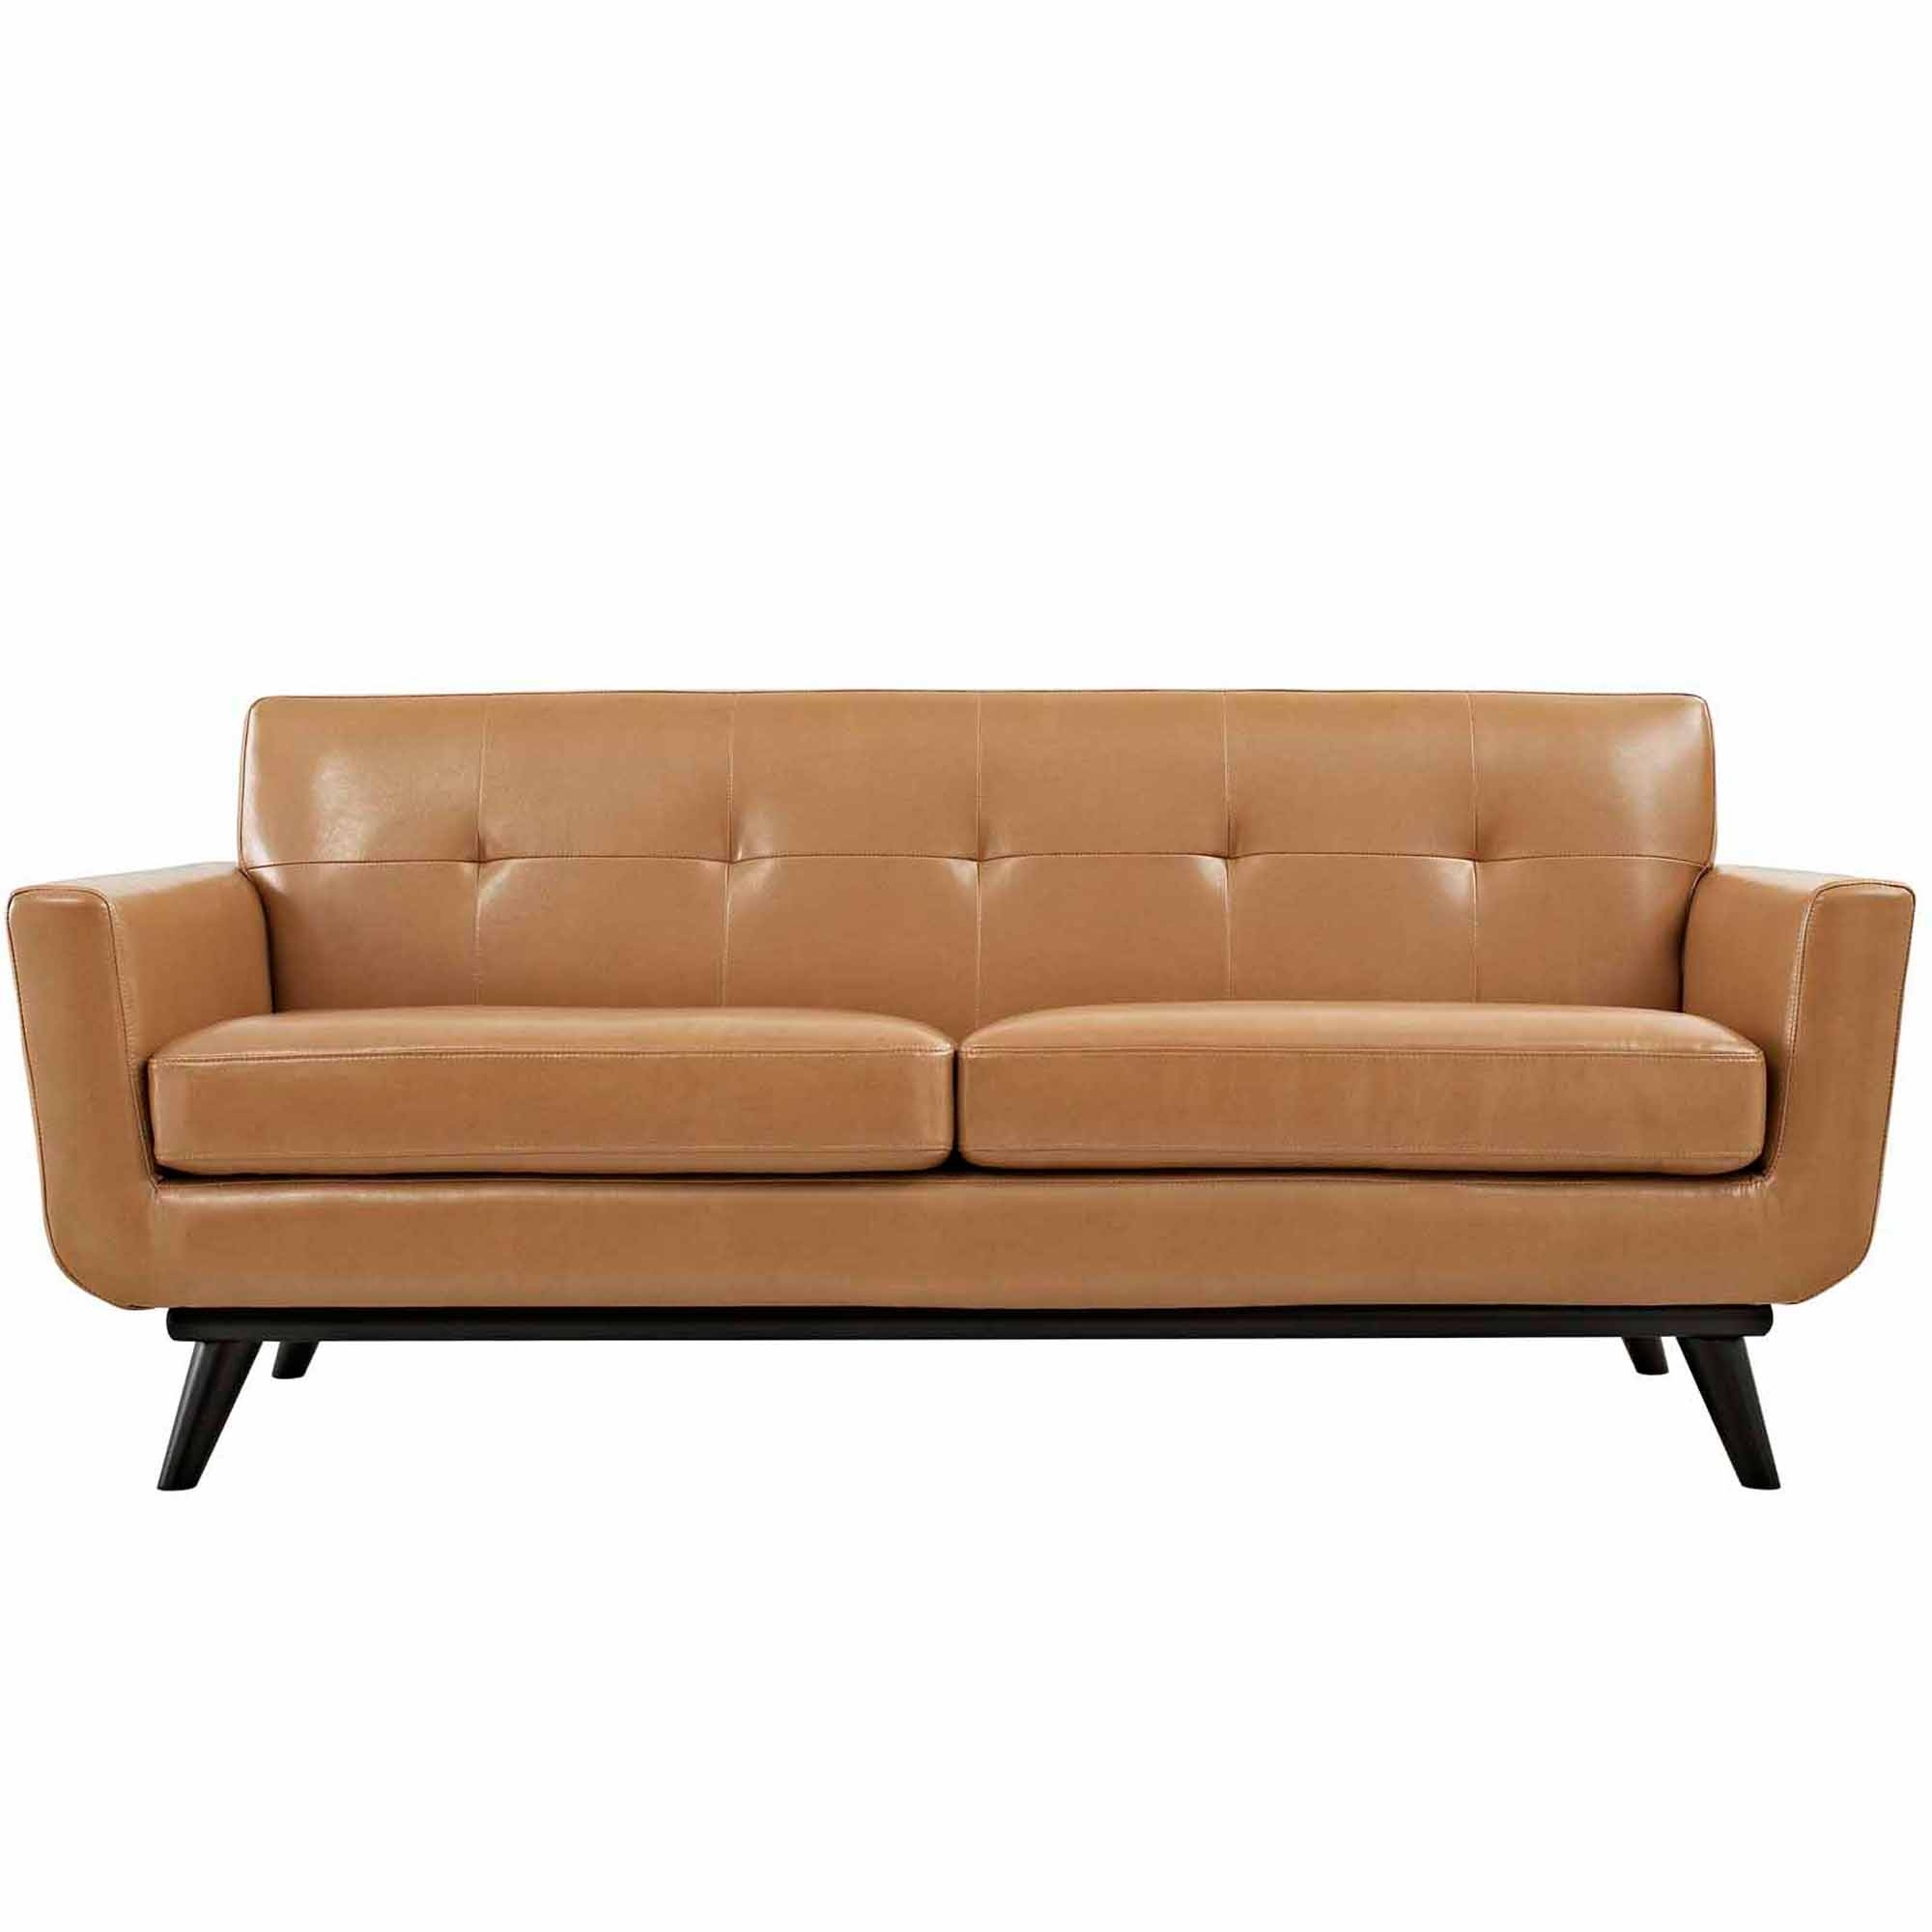 Loveseats Every Day Low Prices – Walmart For Nanaimo Sectional Sofas (View 7 of 10)